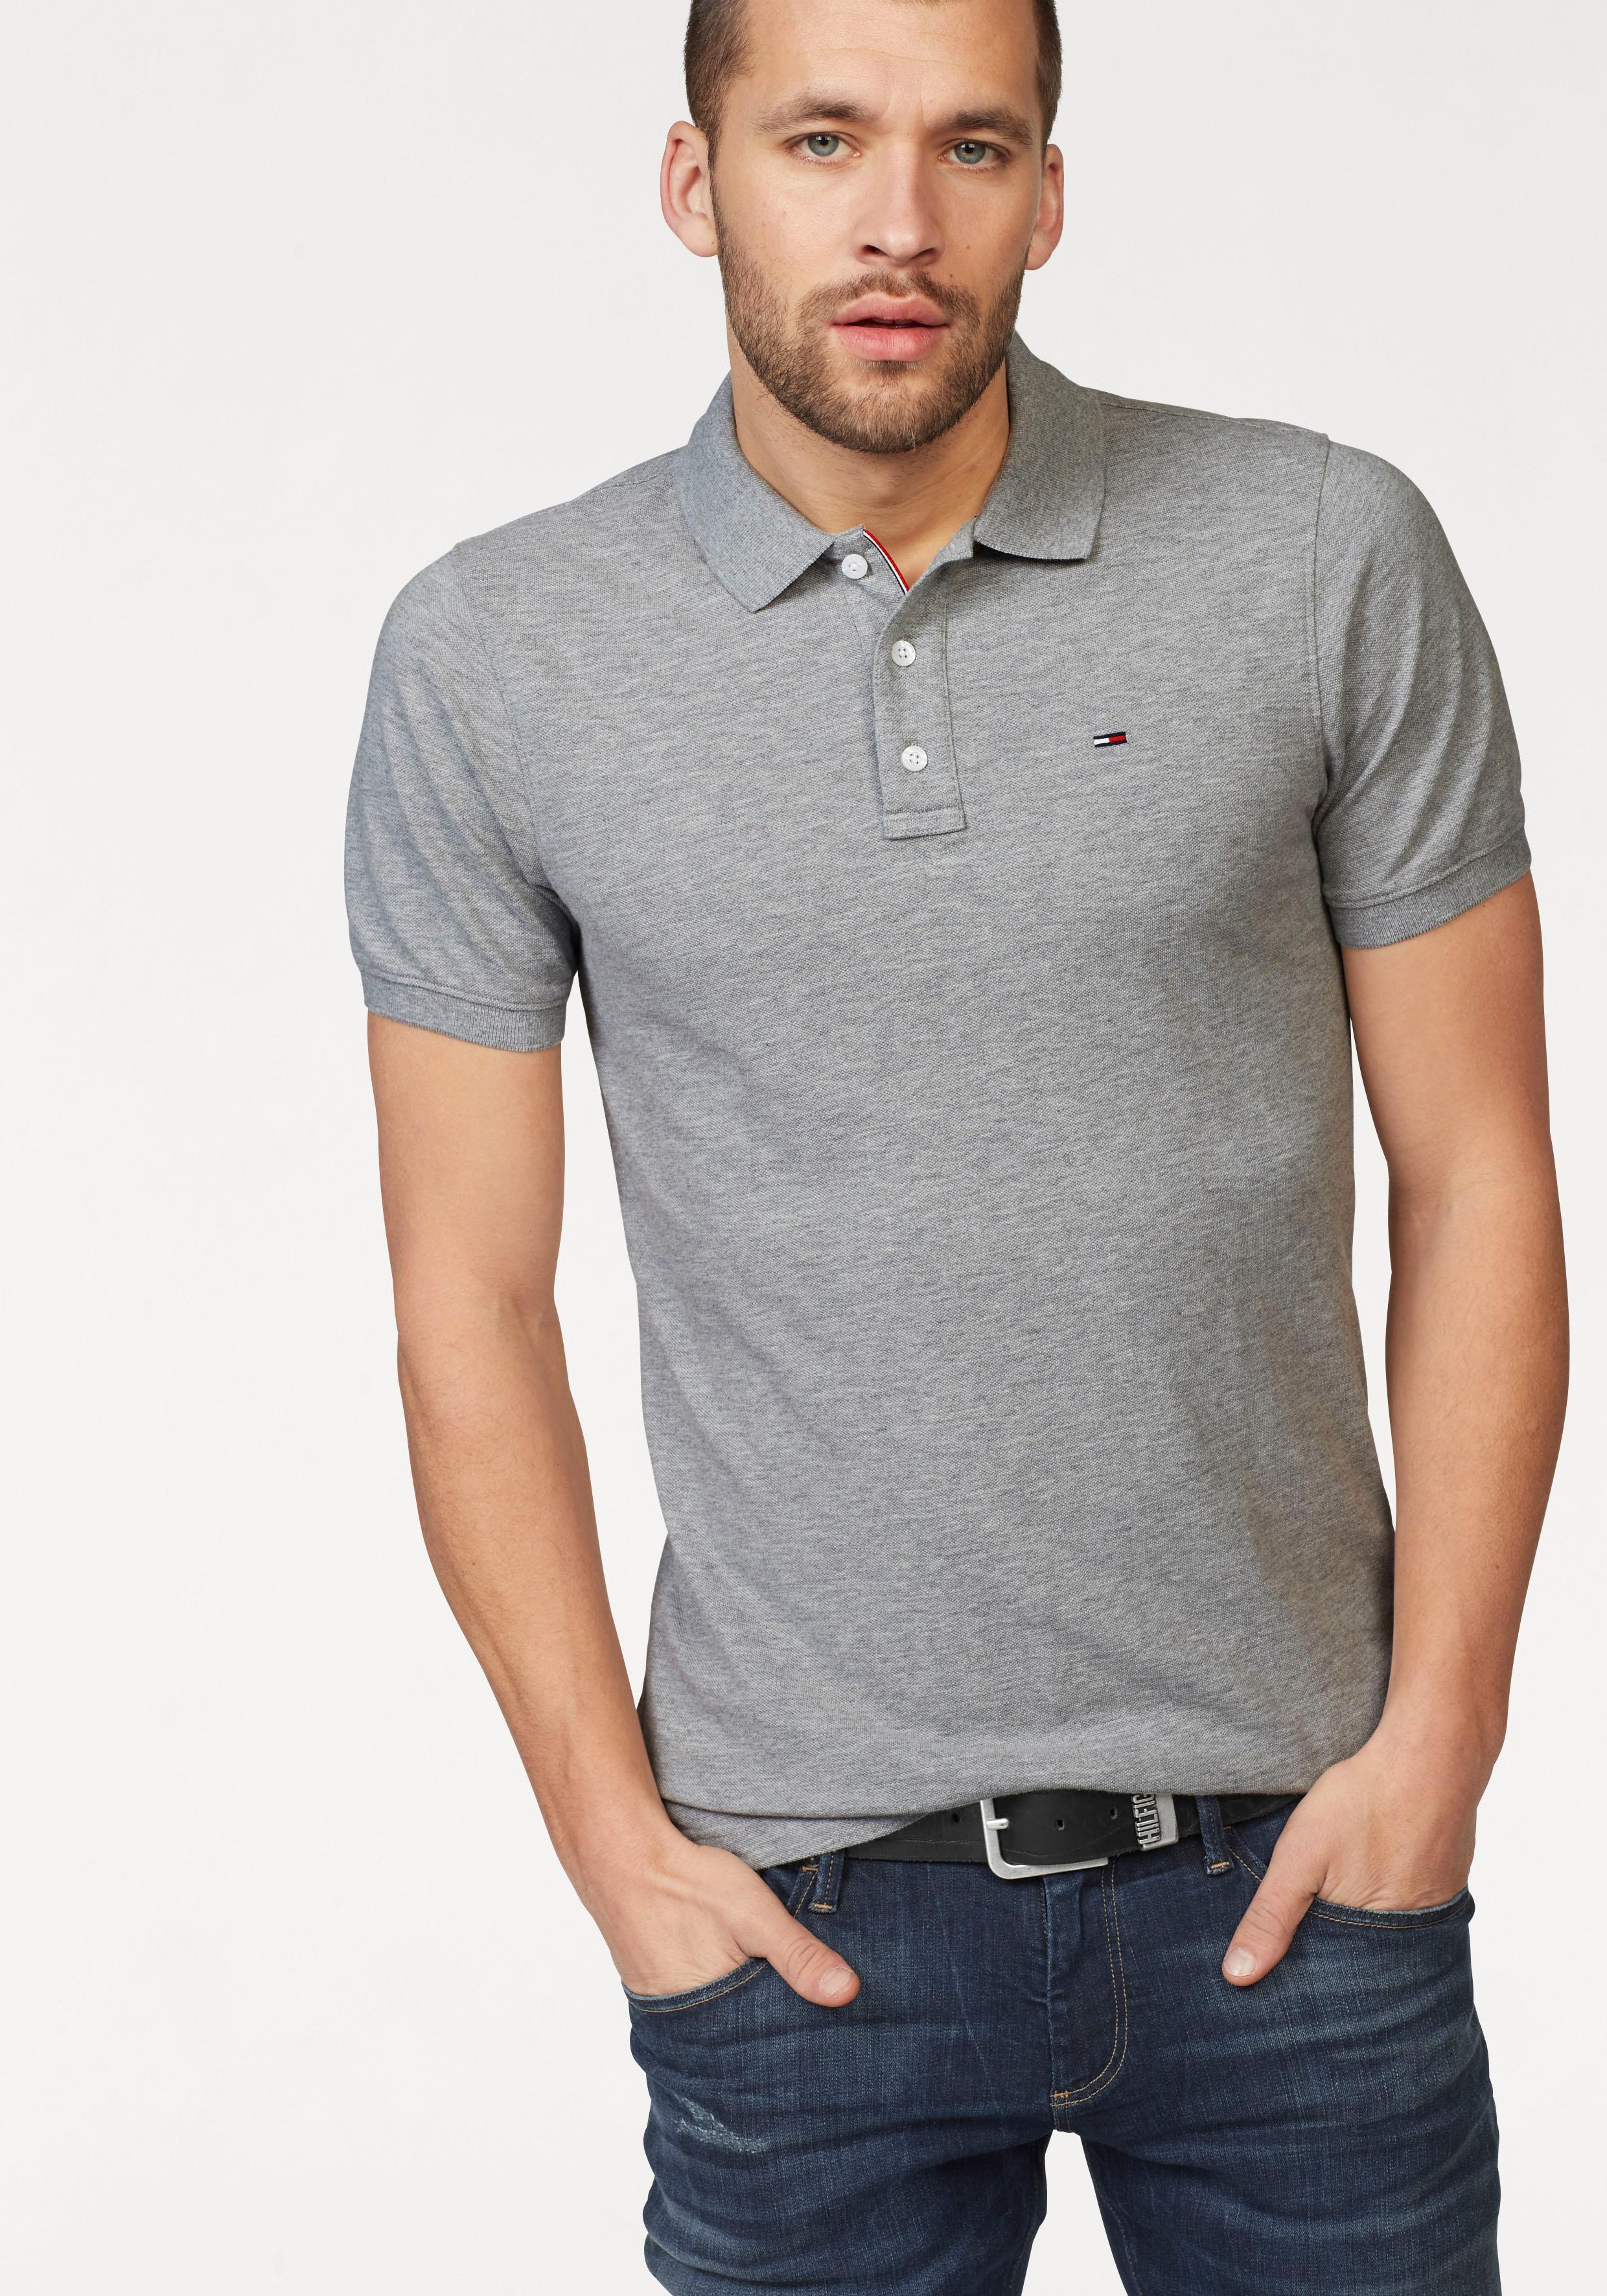 TOMMY JEANS Poloshirt TJM ORIGINAL FINE PIQUE POLO | Bekleidung > Polo Shirts | Tommy Jeans